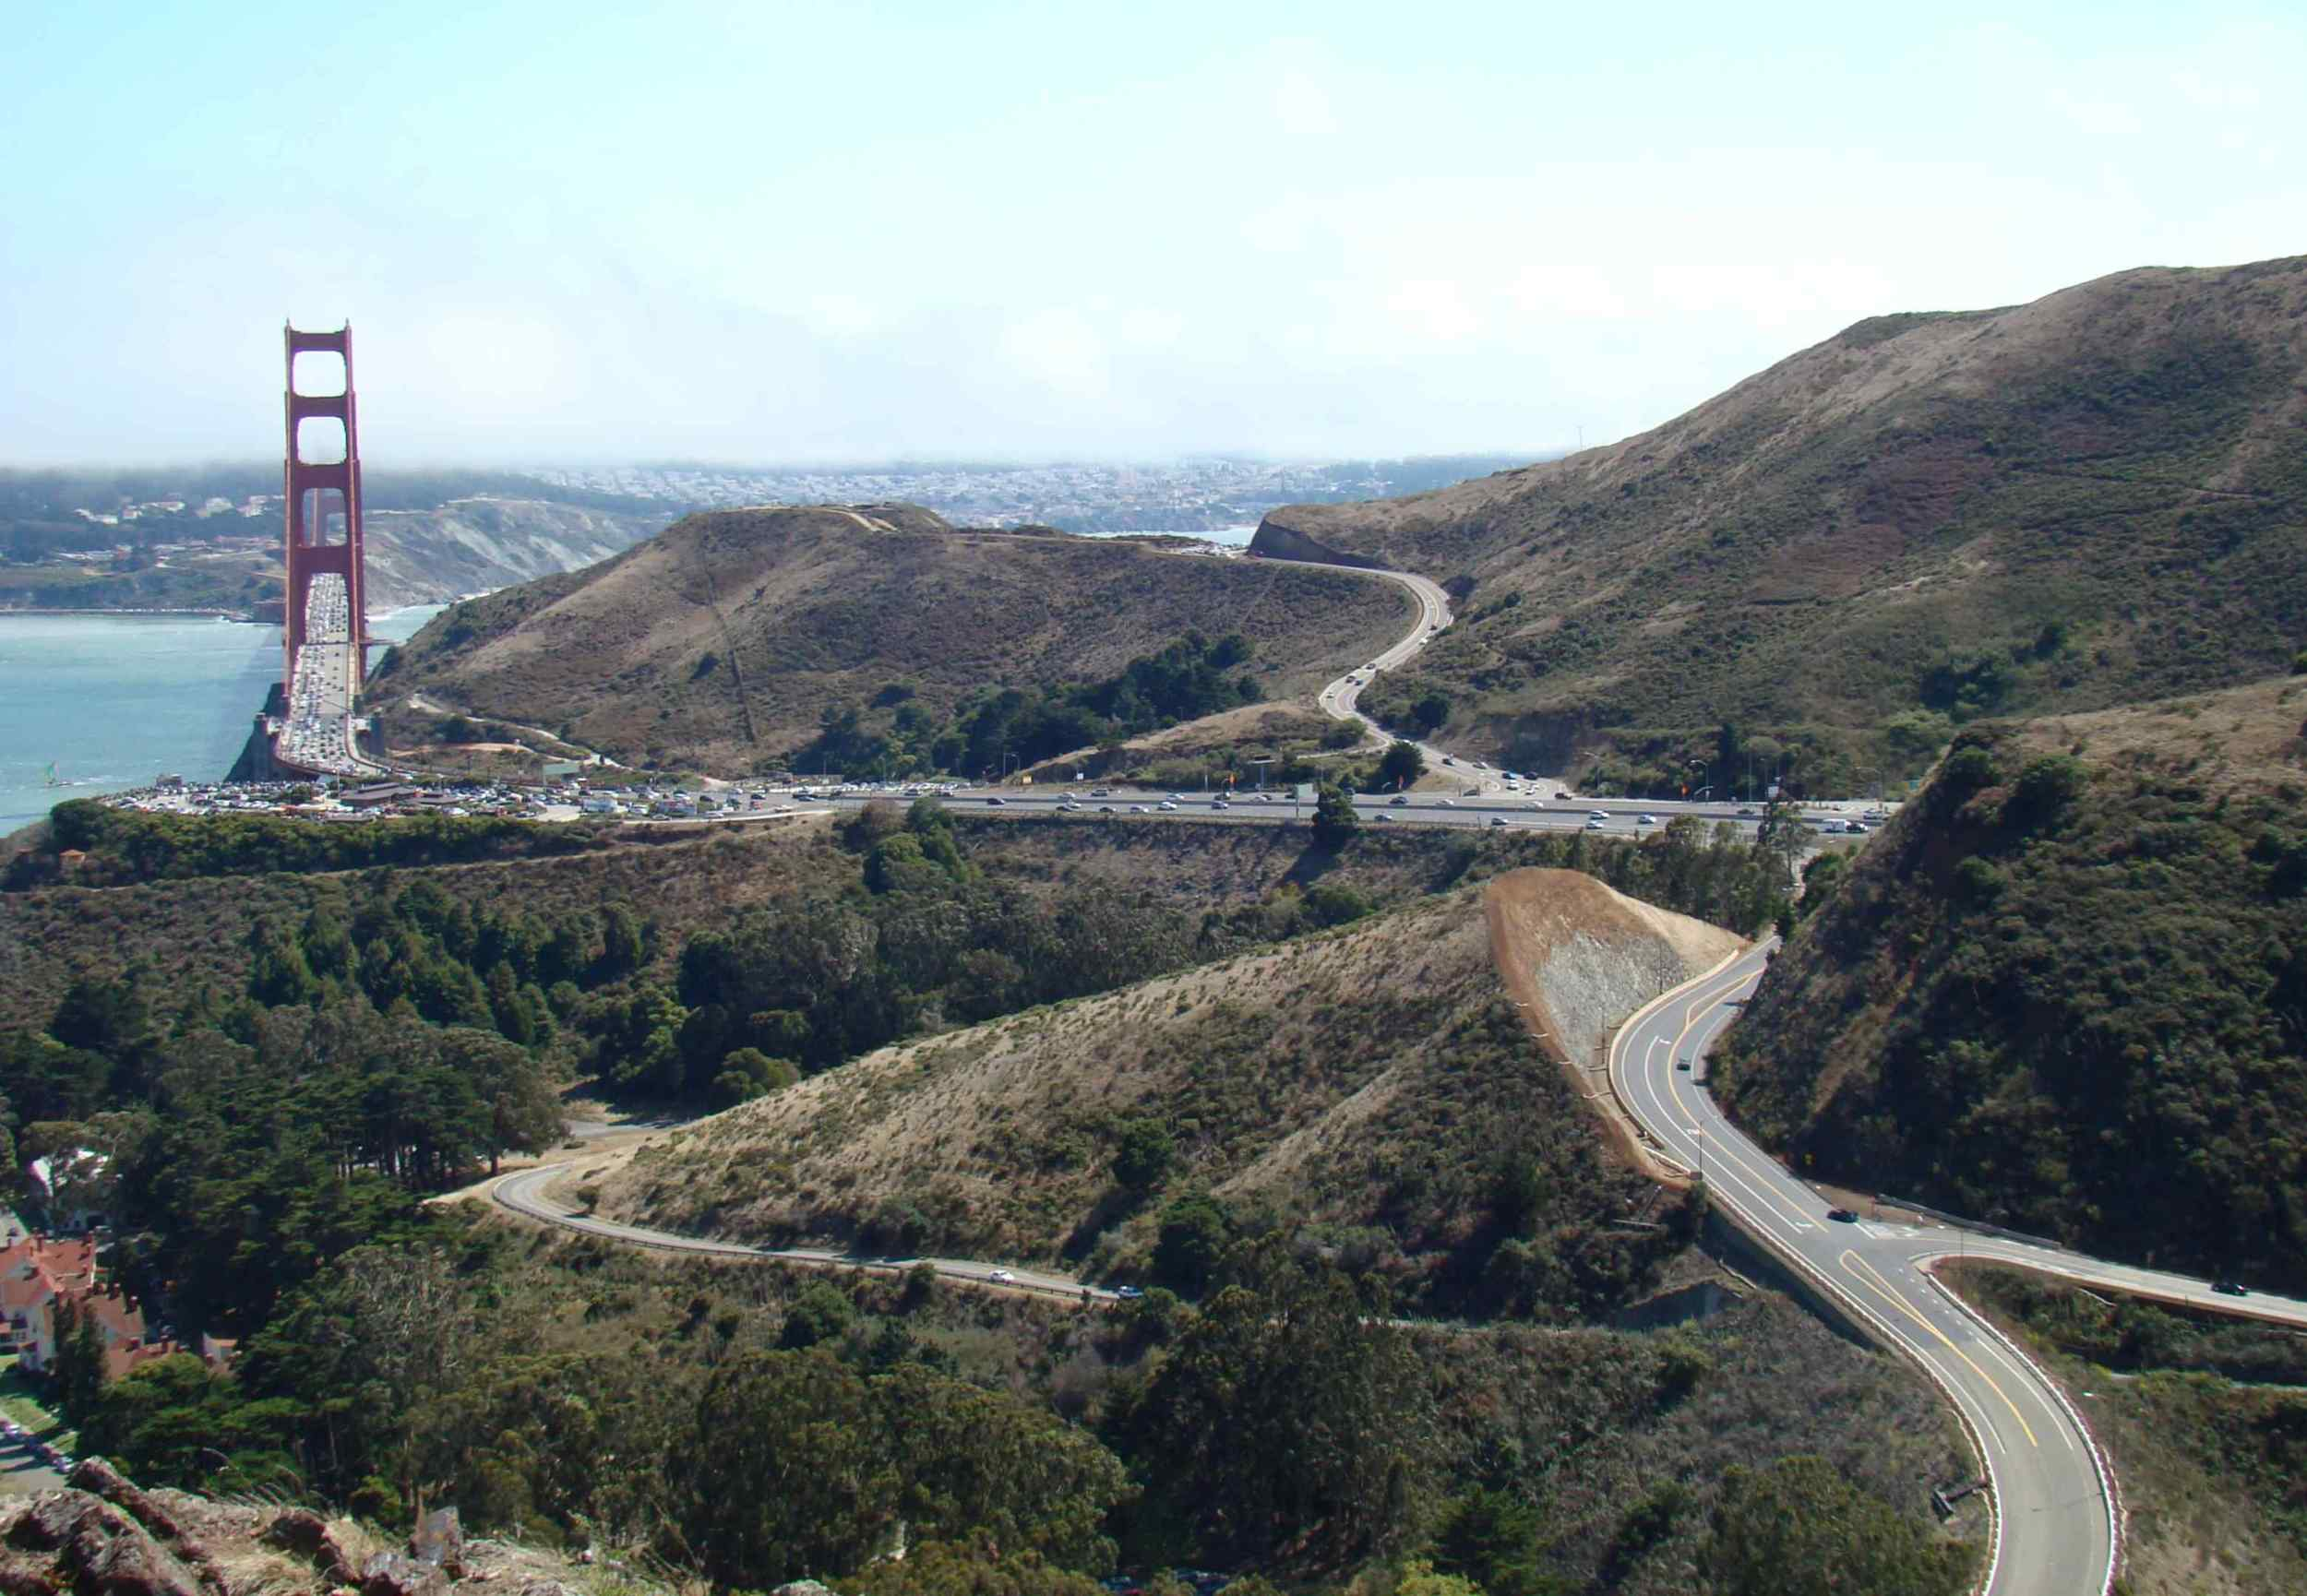 Completed Alexander Avenue Cut and MSE wall from above near Hwy 101 Waldo tunnels